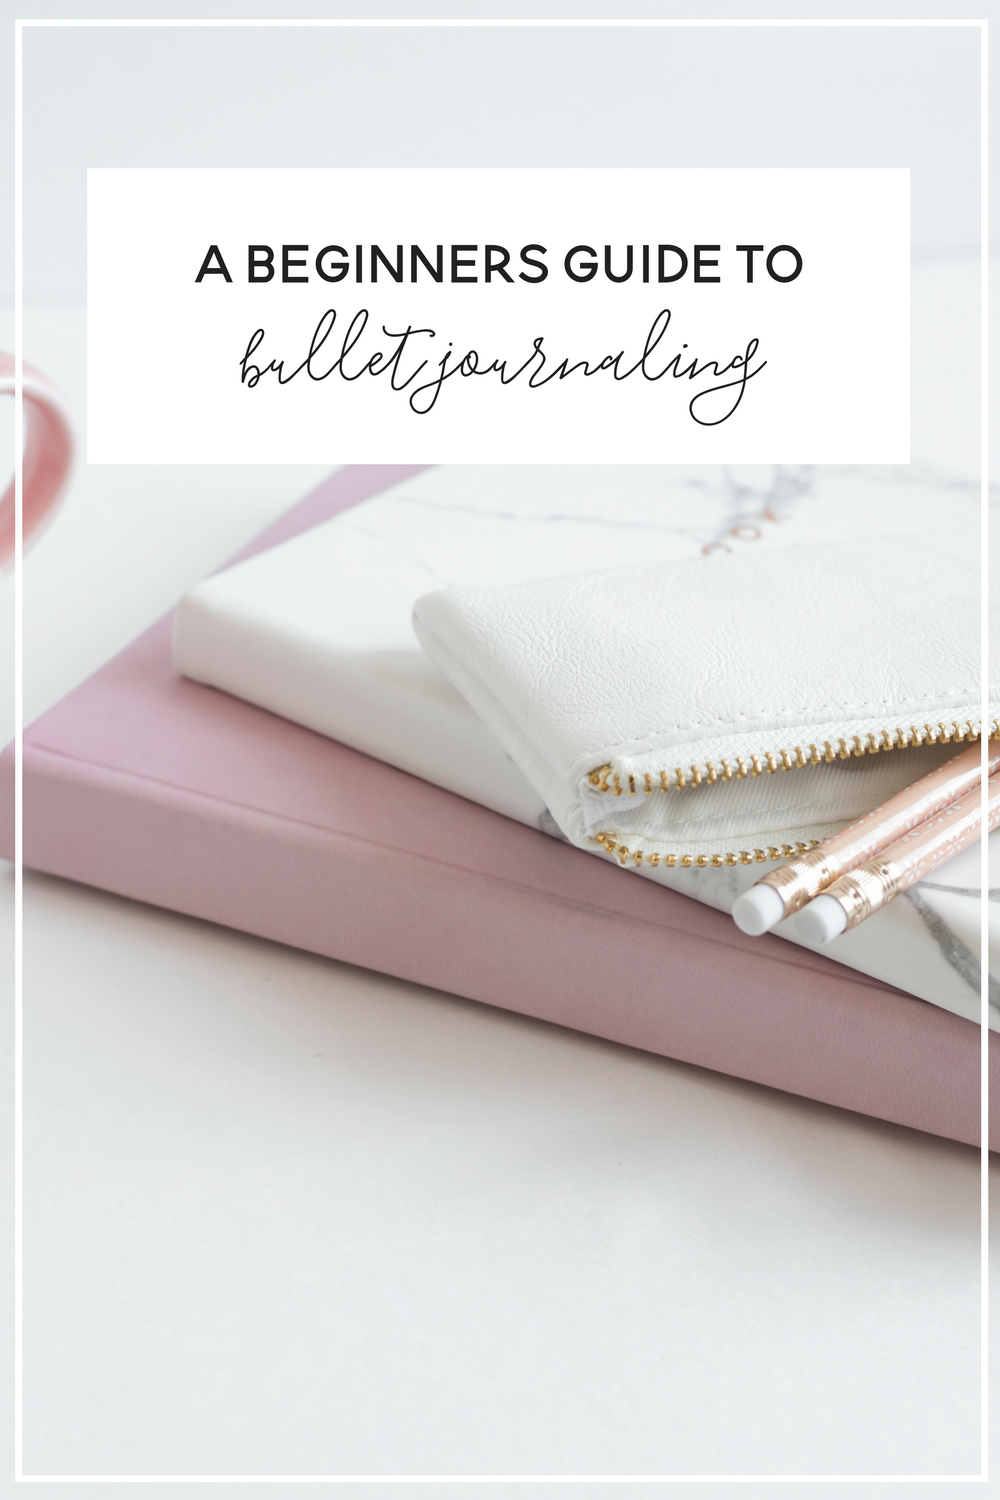 a beginners guide to bullet journaling.png